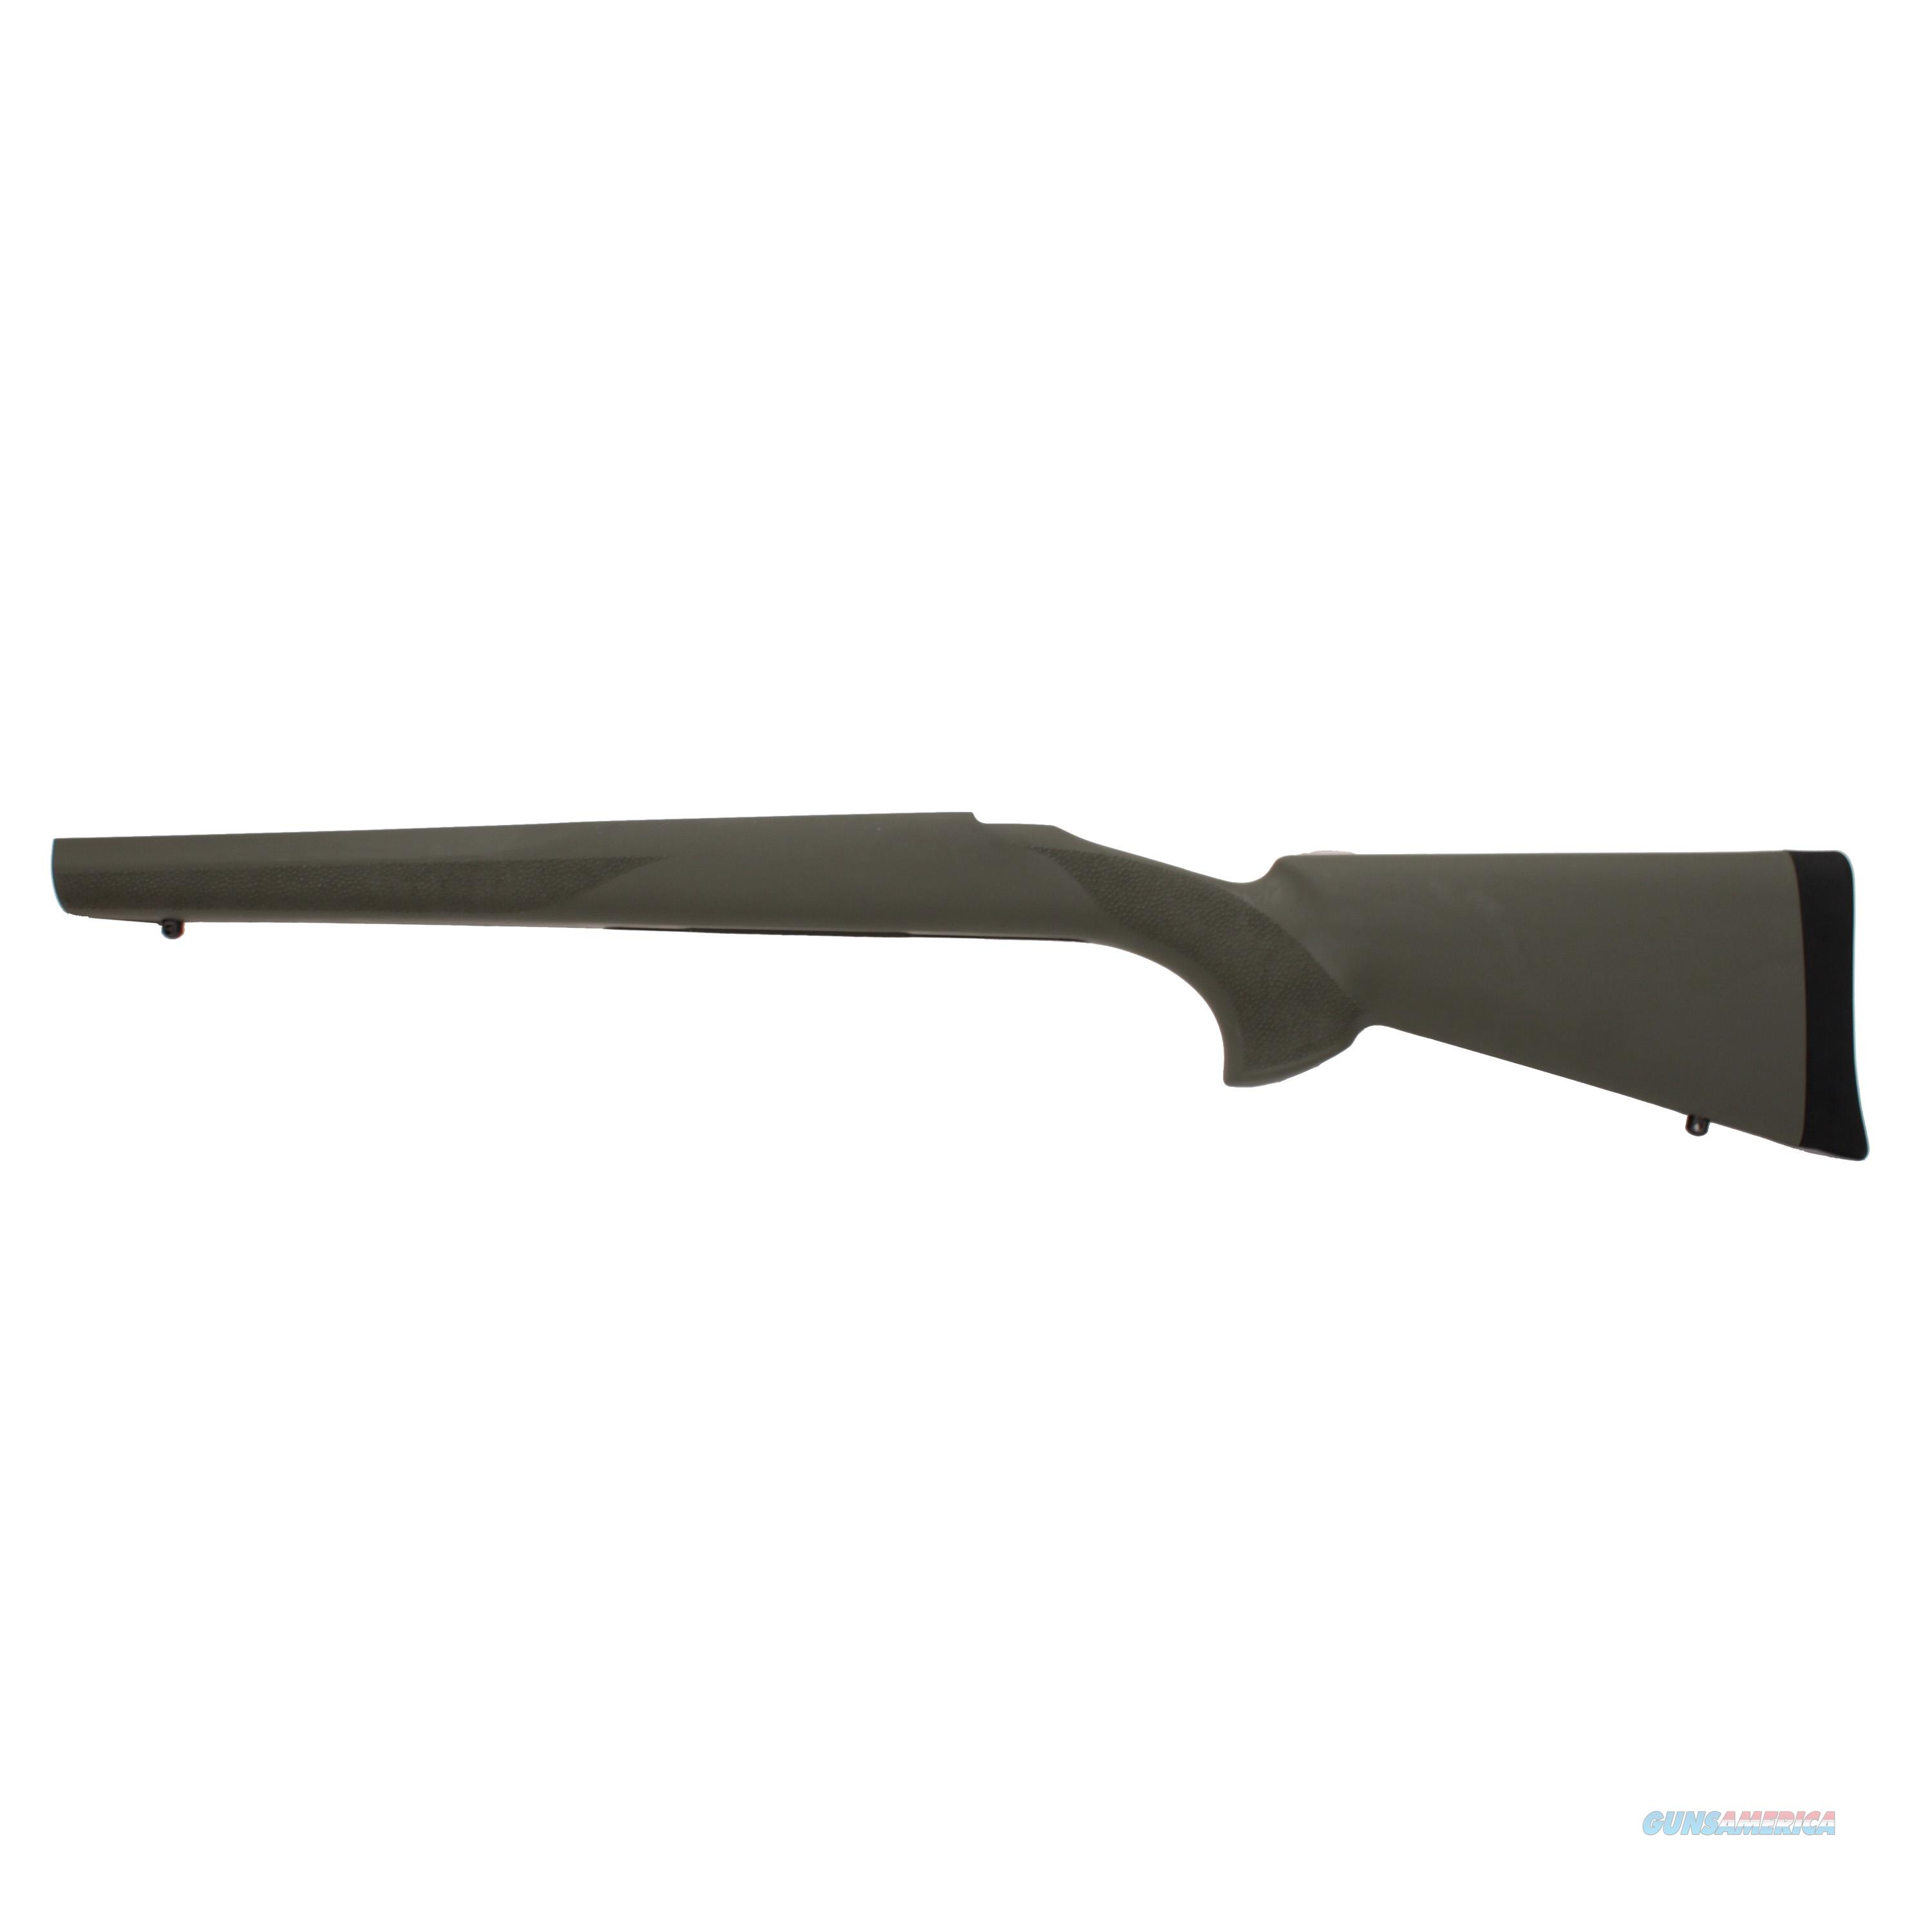 Hogue Howa 1500/Weatherby Long Action Stock 15203  Non-Guns > Gunstocks, Grips & Wood